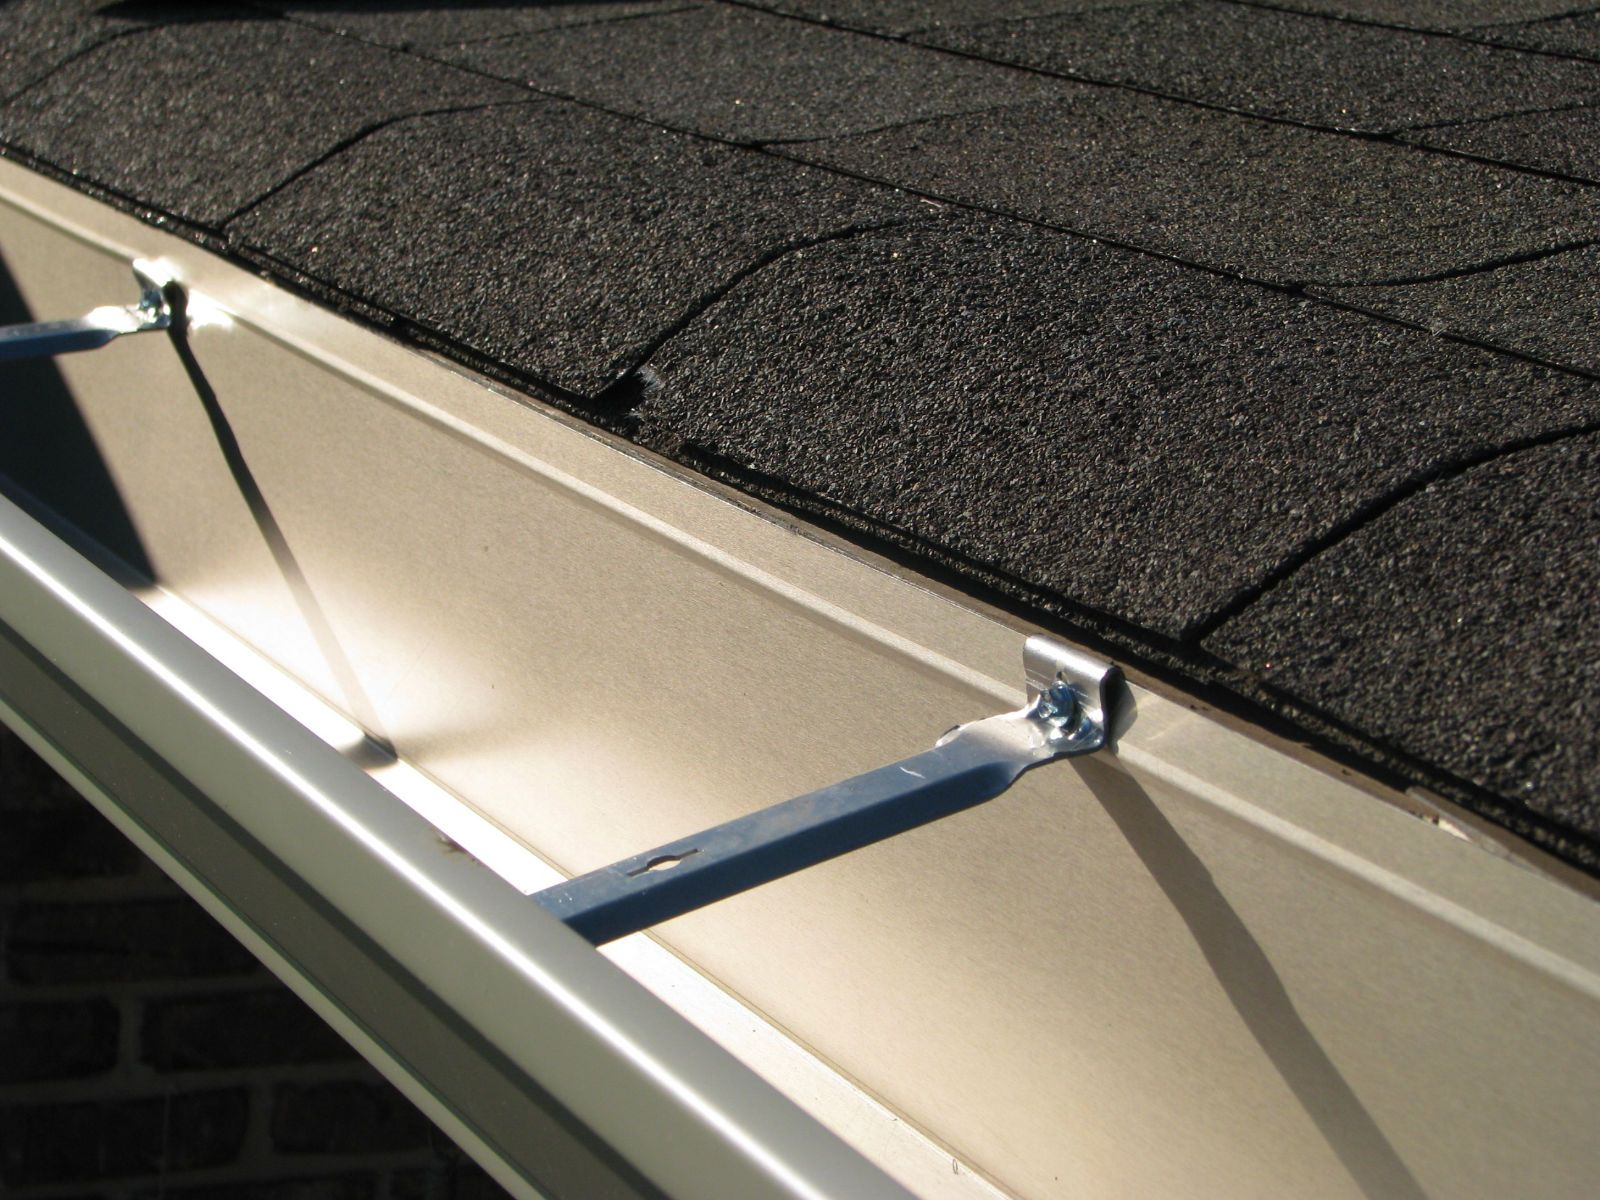 Is Gutter Installation Cost Varies Or Not Contact Sunhinegutterspro For Genuine Installatio With Images How To Install Gutters Cleaning Gutters Rain Gutter Installation